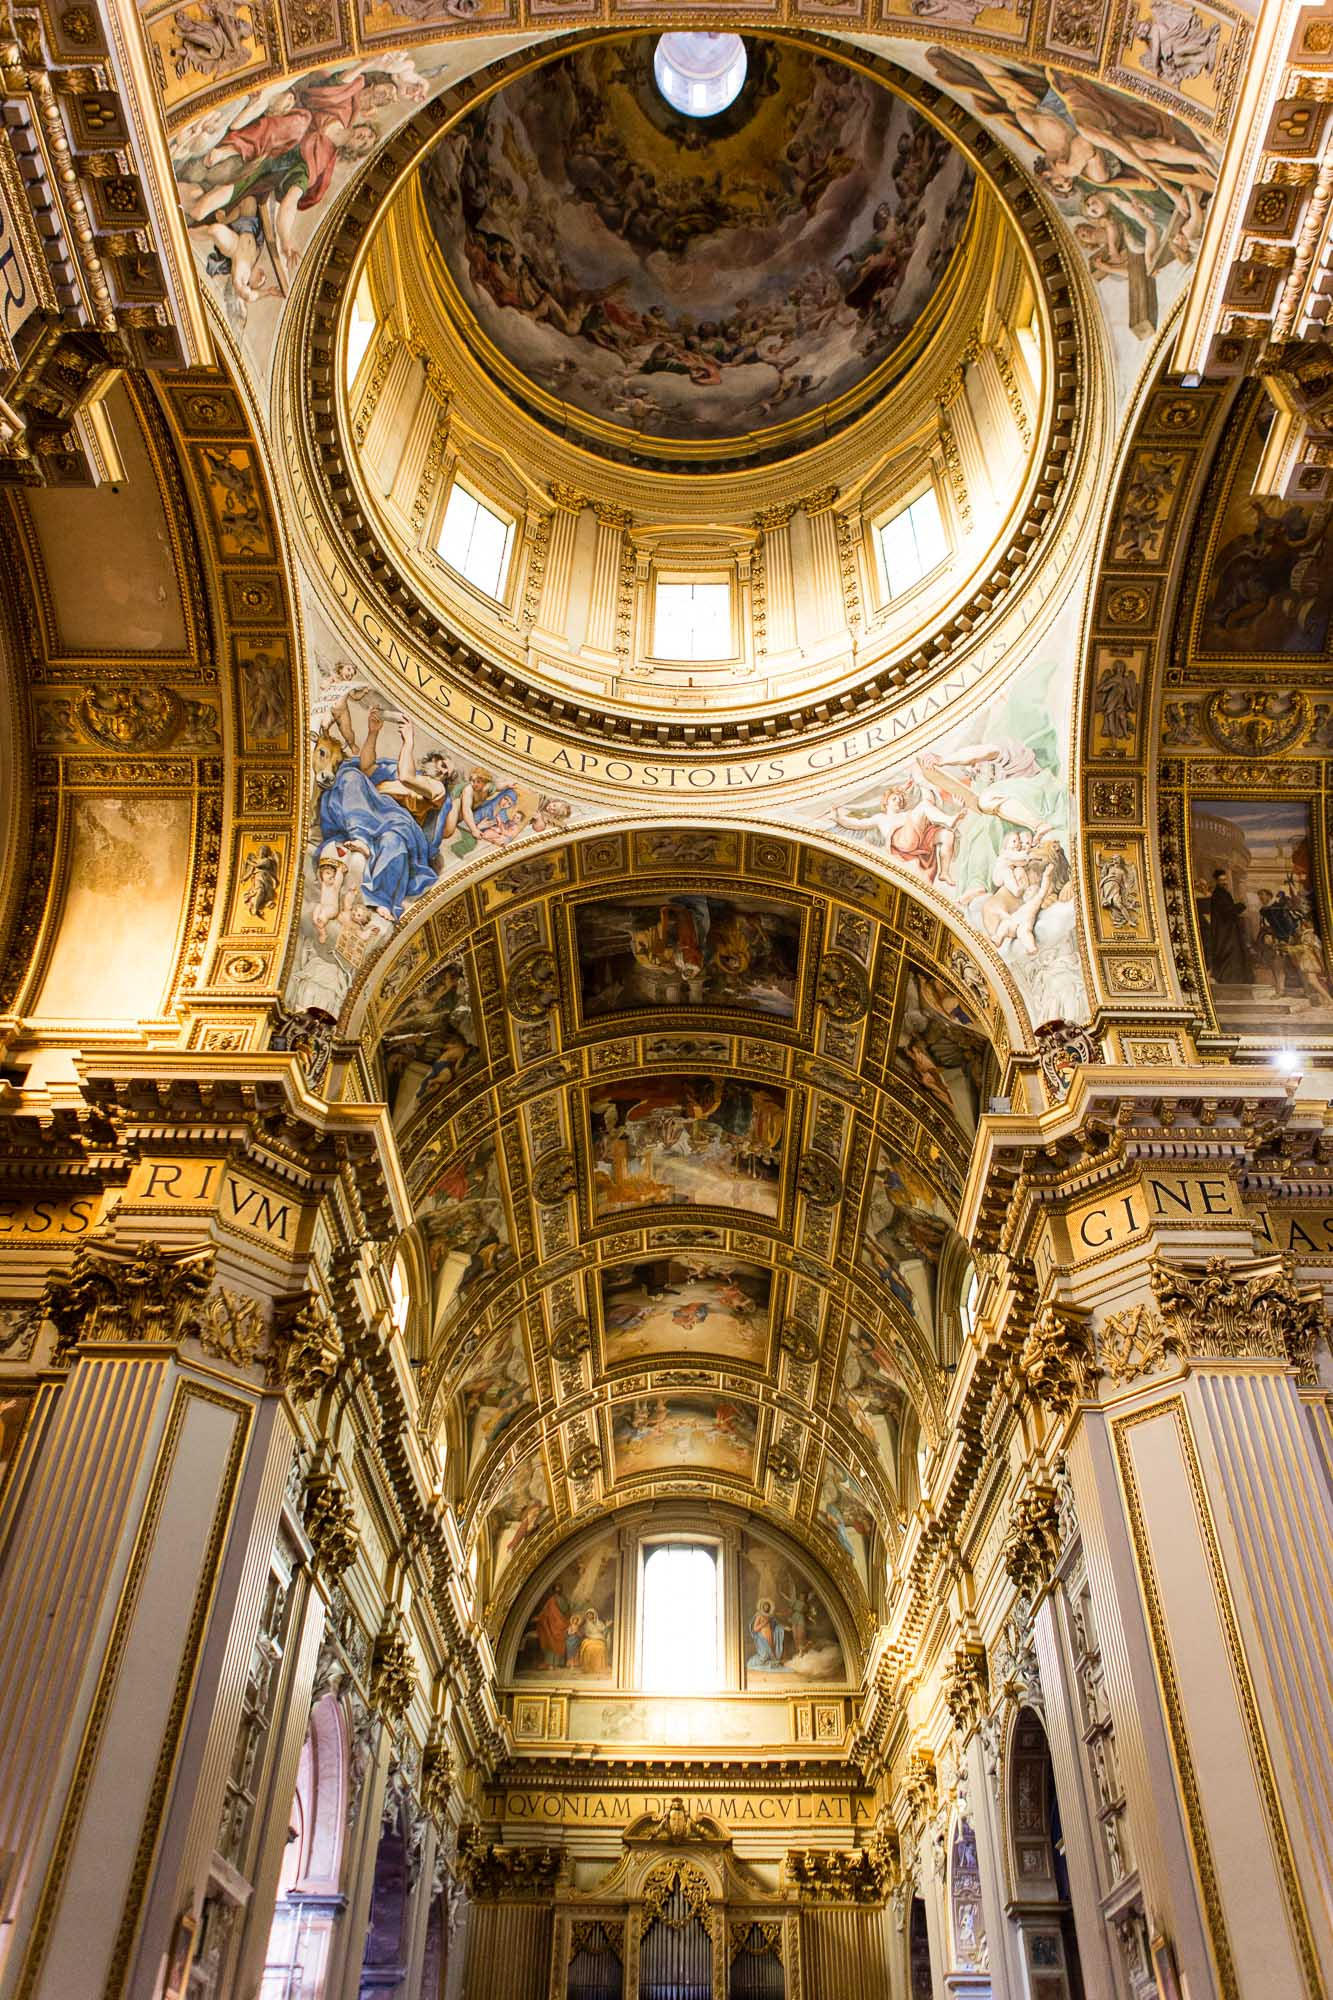 Church Interior, taken by Ben Lee, a derbyshire based photographer on his trip to Rome.